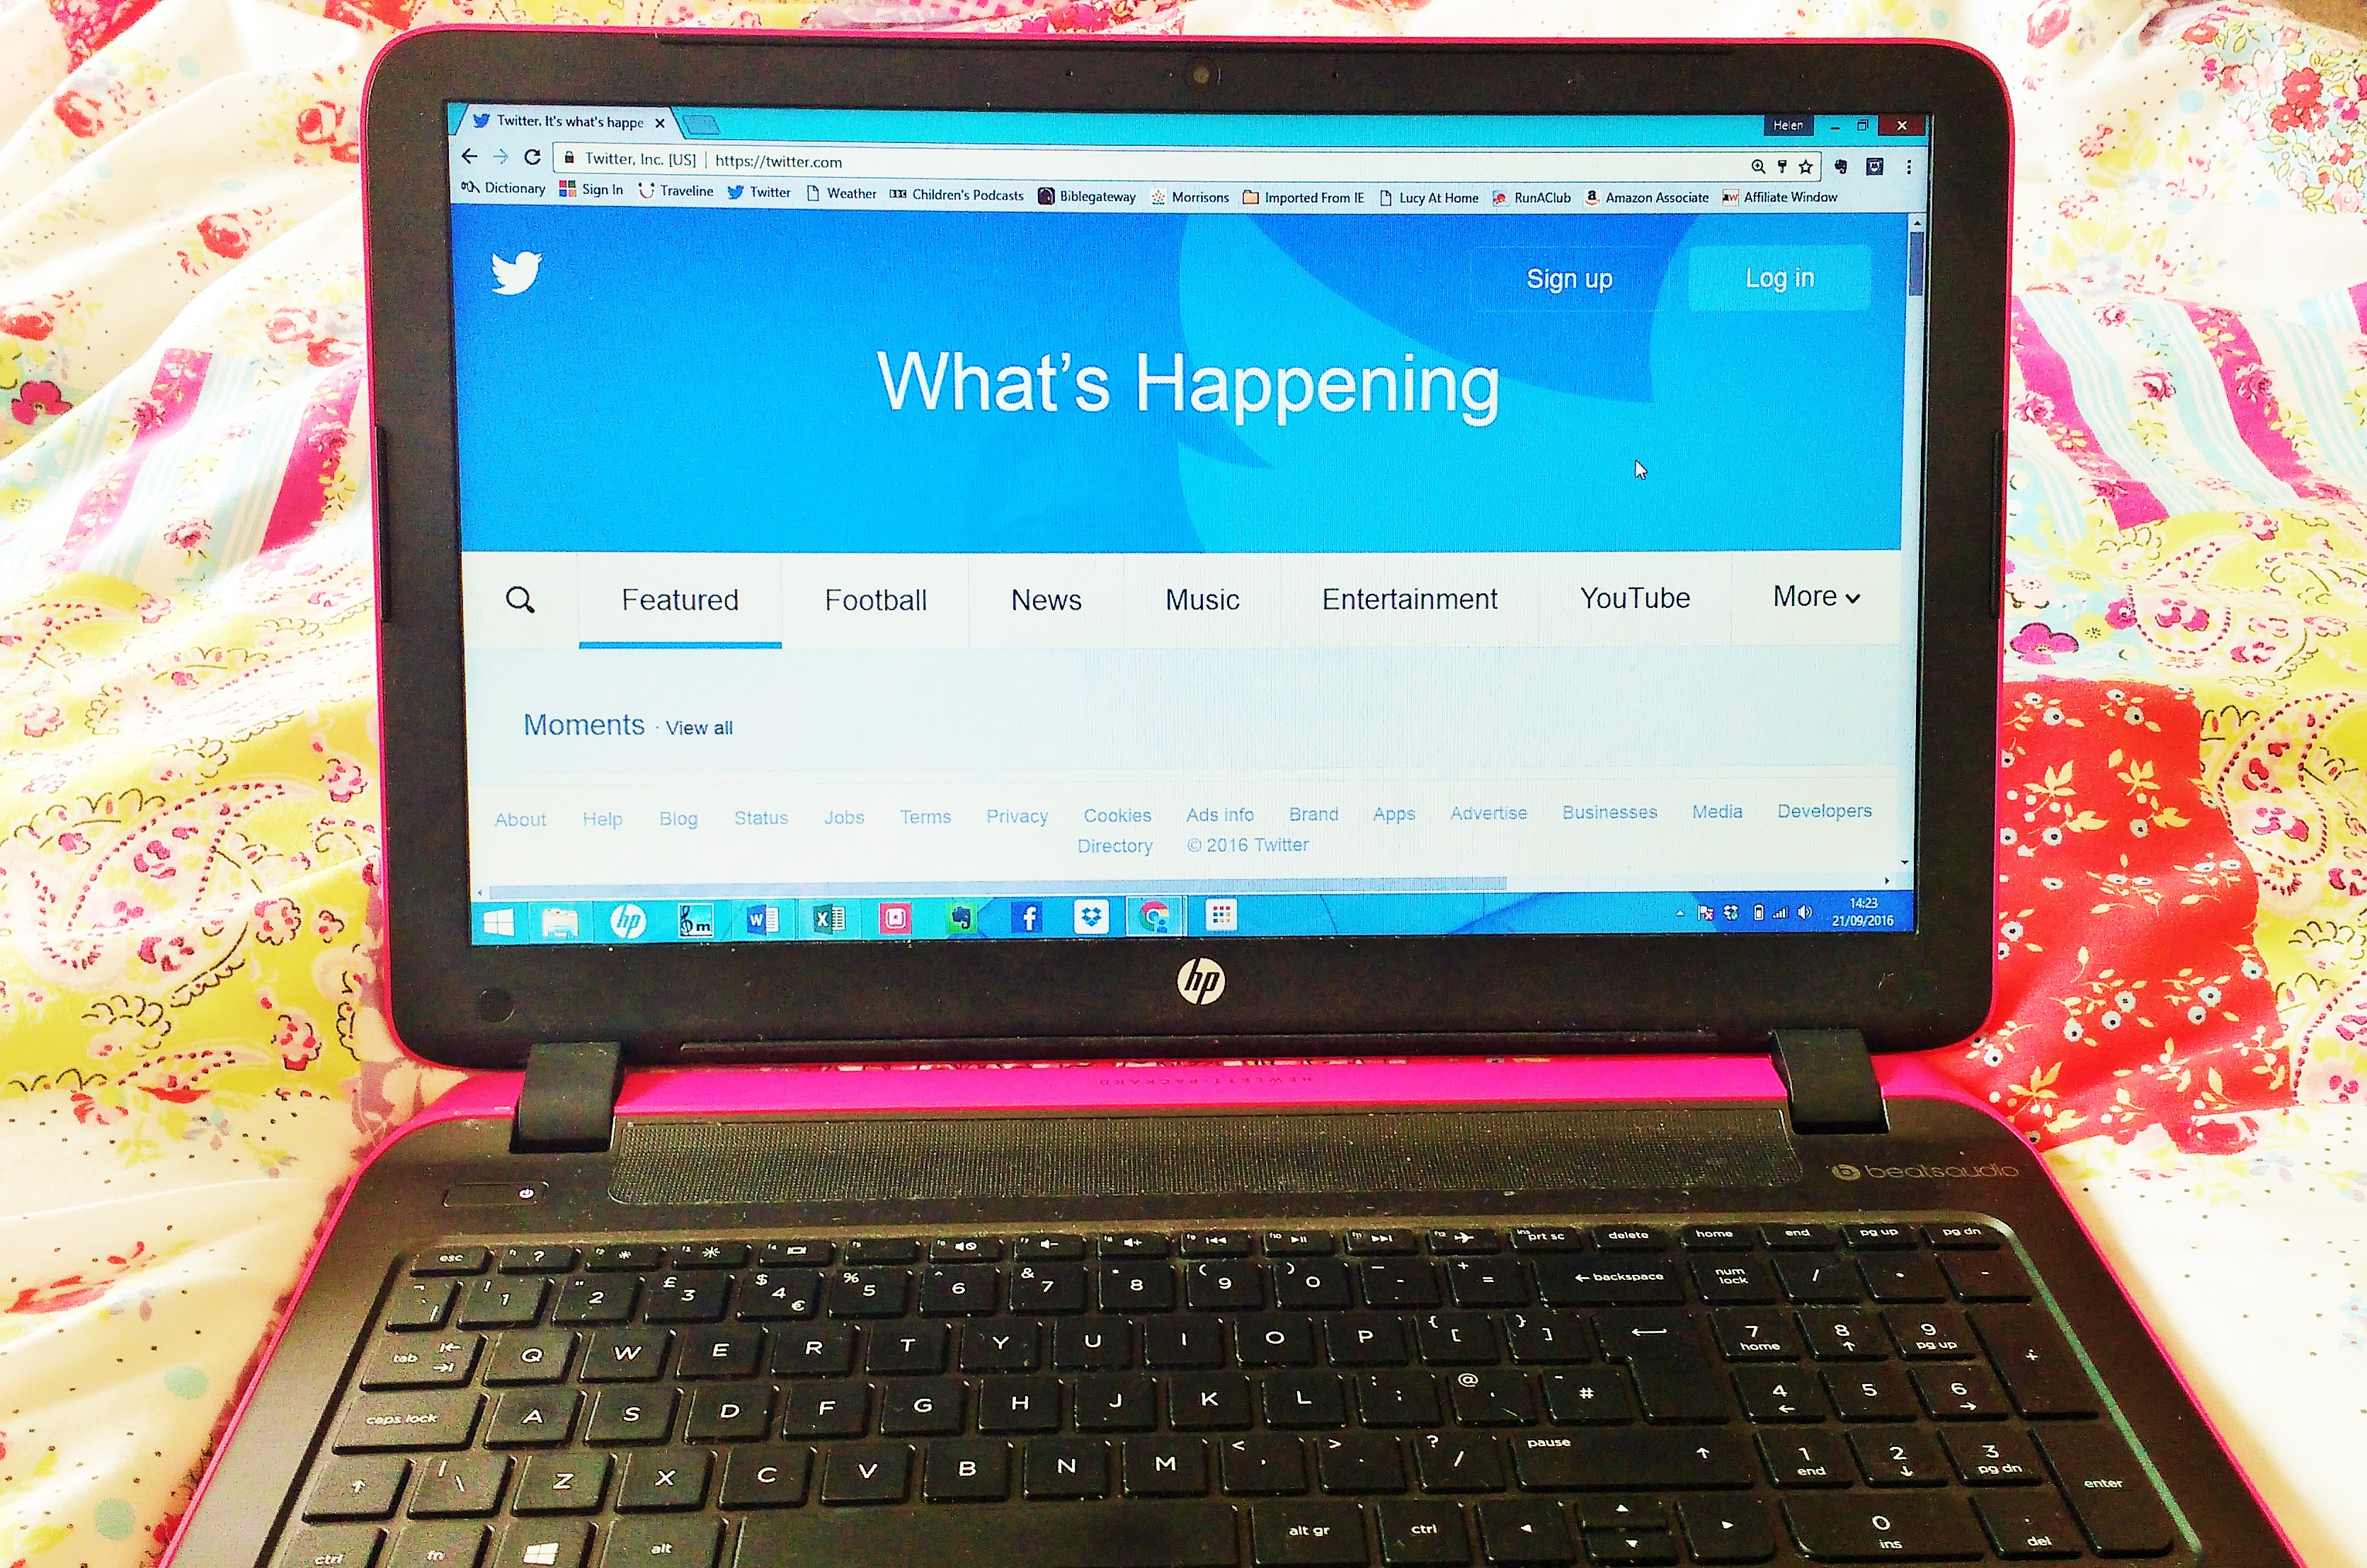 twitter on a laptop - digital technology tips for parents